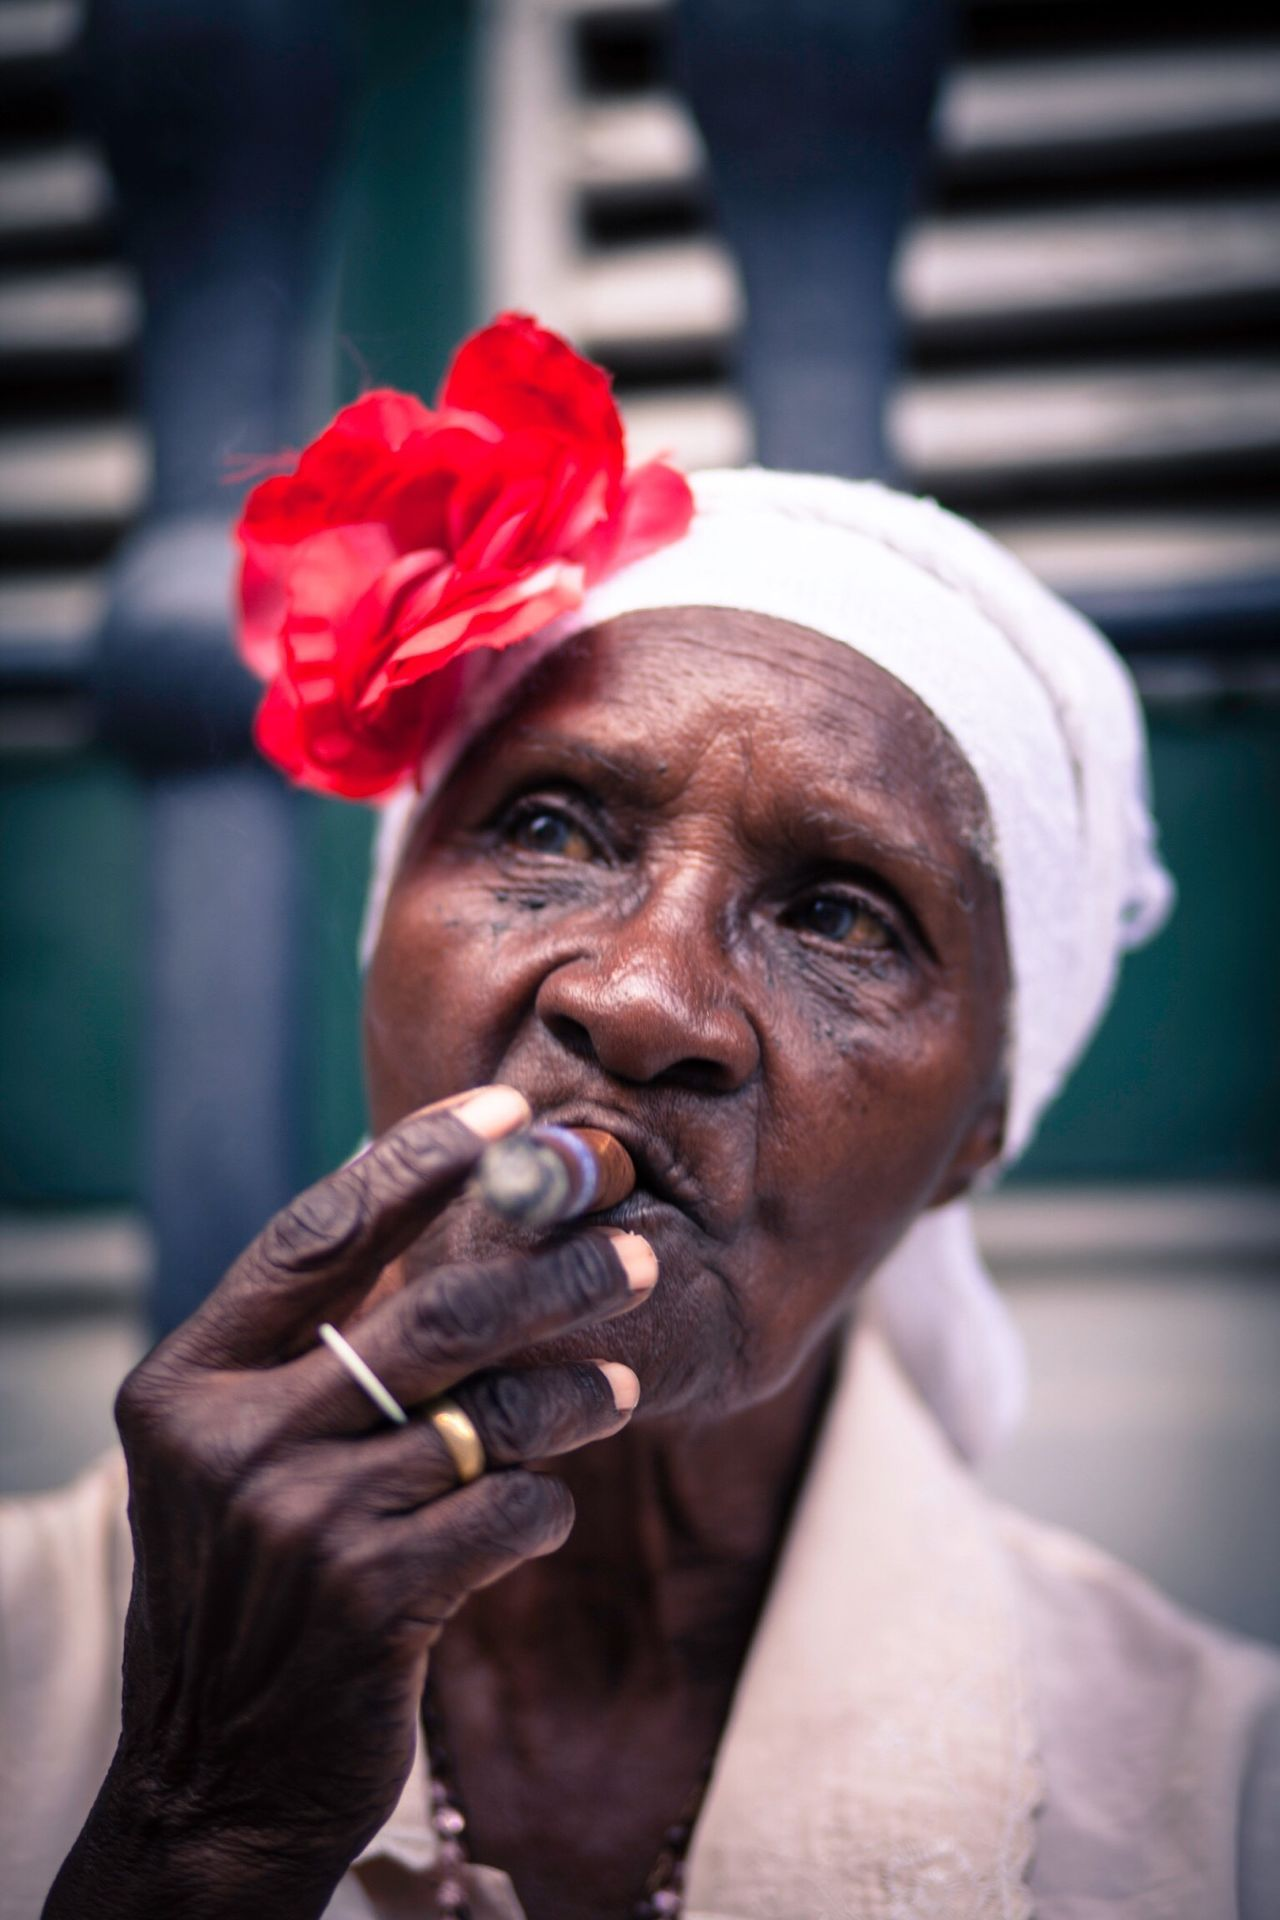 Cuba People Sigar Potrait Up Close Street Photography Travel Vacation Havana Cuban Holiday City Life Old Lady The Portraitist - 2016 EyeEm Awards